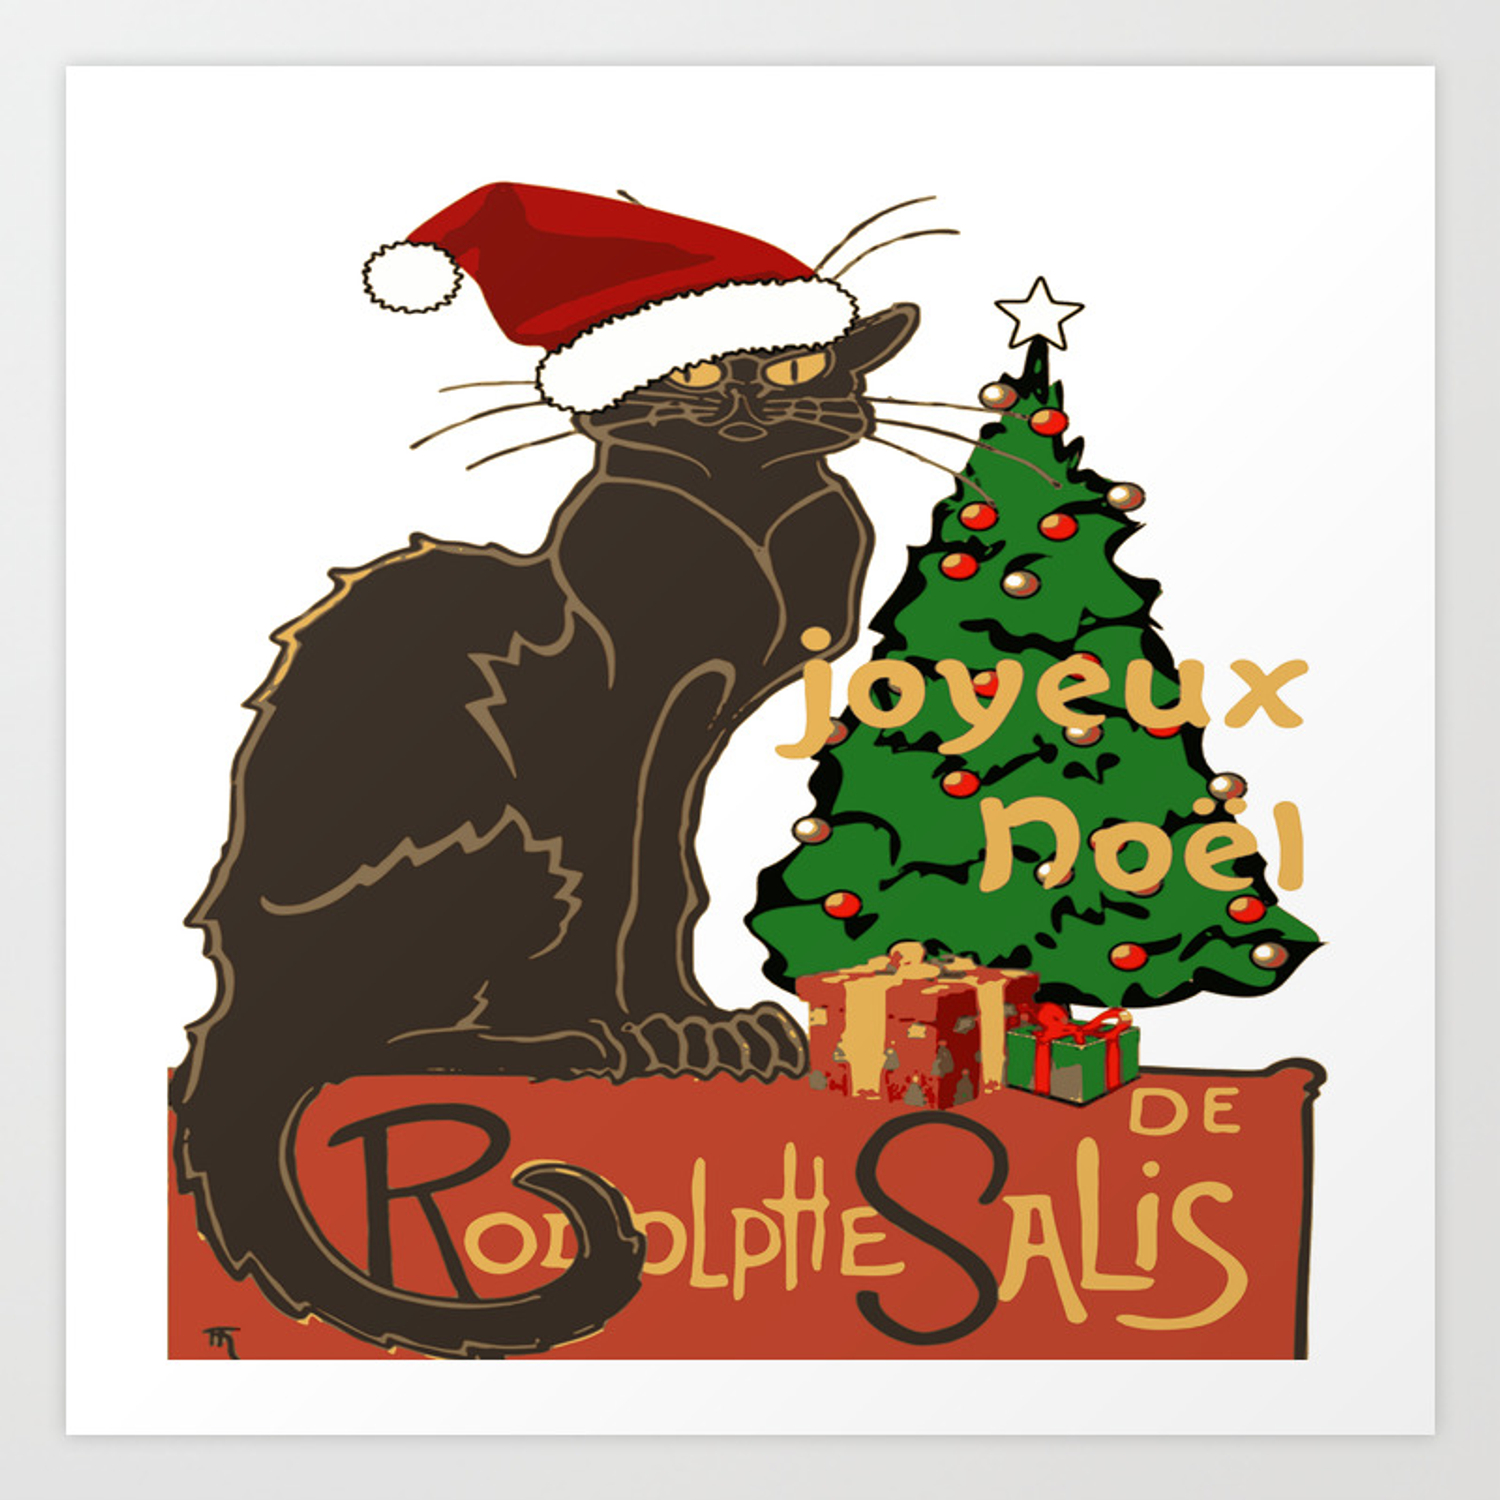 Chat Noel Joyeux Noel Le Chat Noir With Tree And Gifts Art Print by taiche